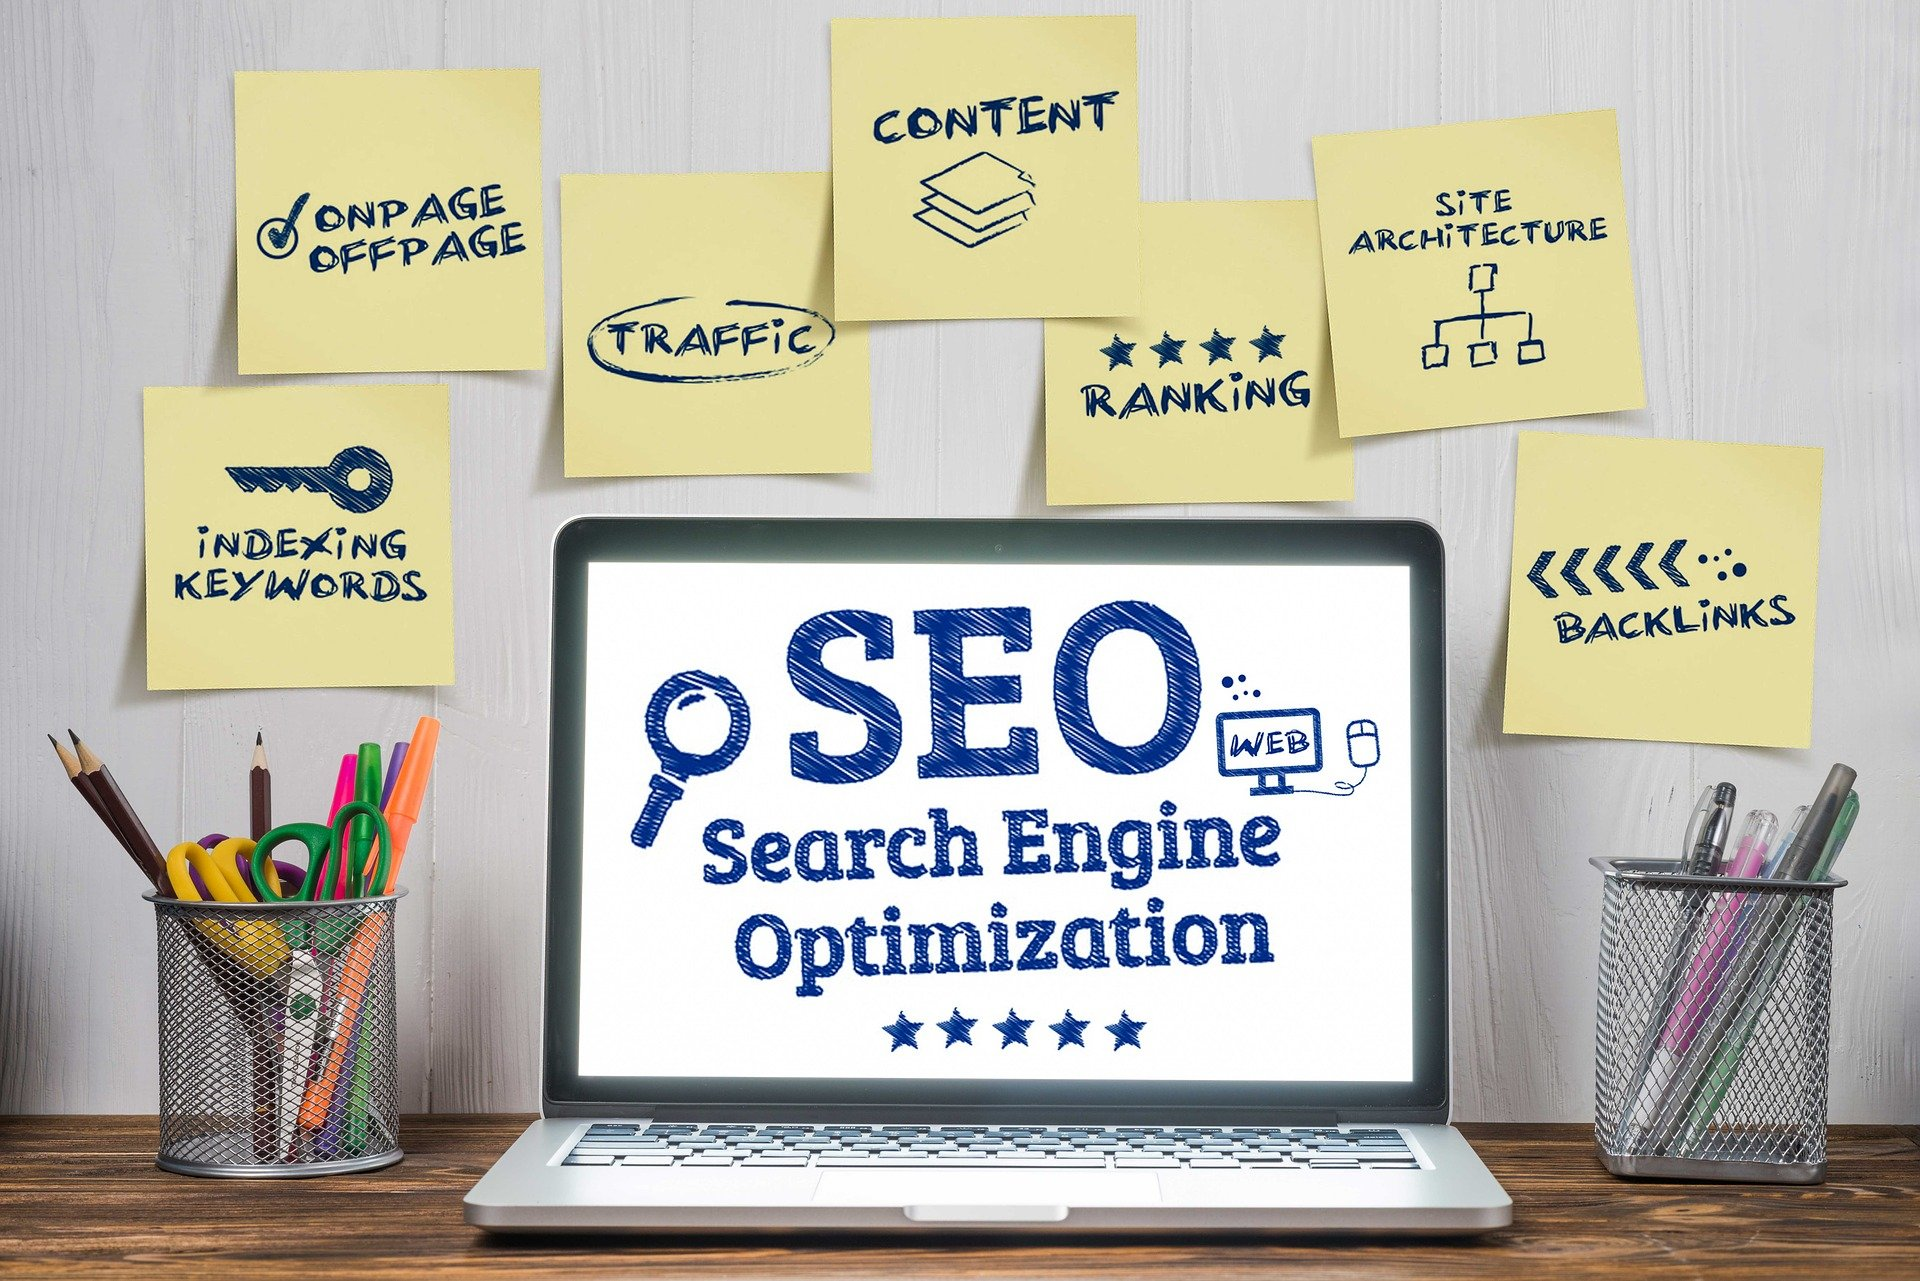 Best Dallas SEO Expert, Dallas SEO Consultants